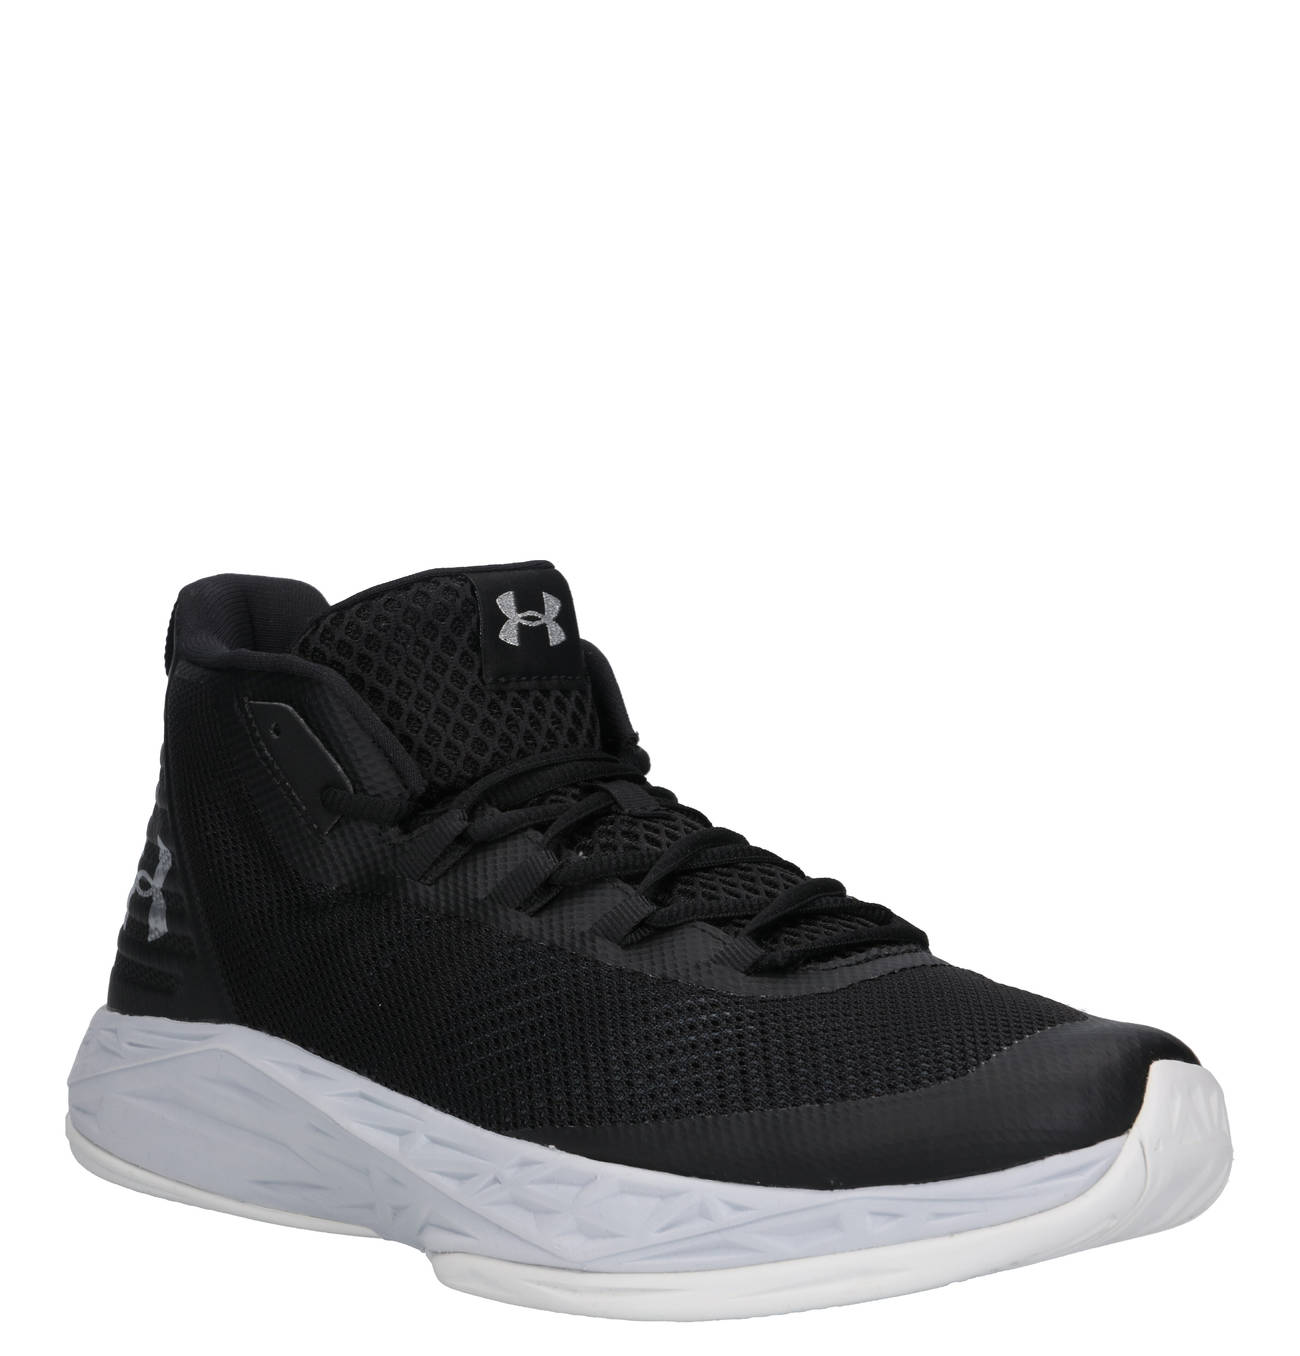 UNDER ARMOUR Basketballschuhe